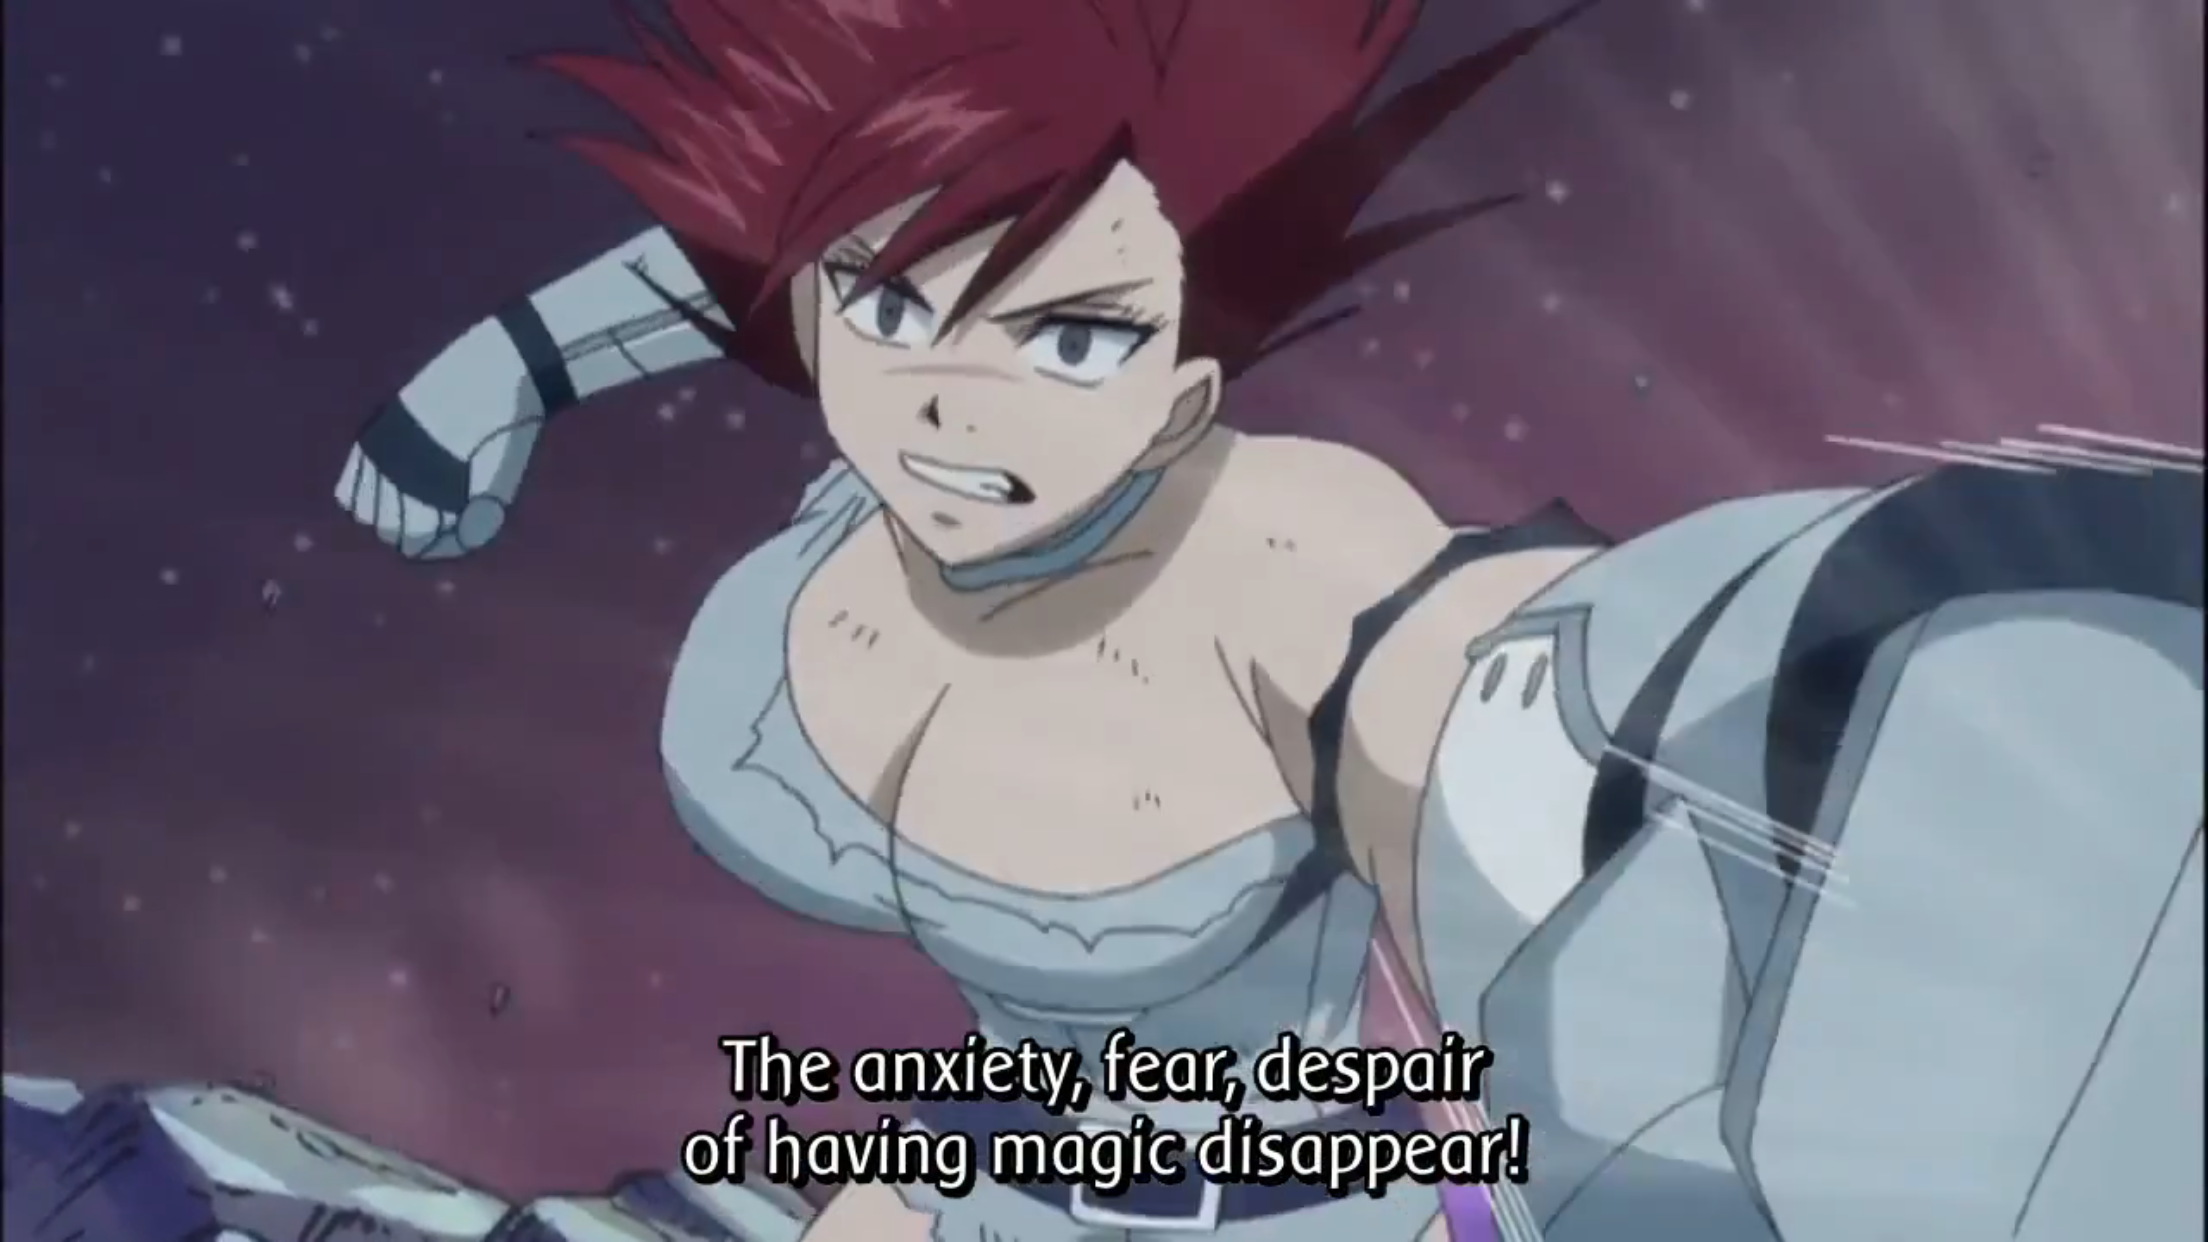 Fairy Tail Episode 92 Fairy tail episodes, The last